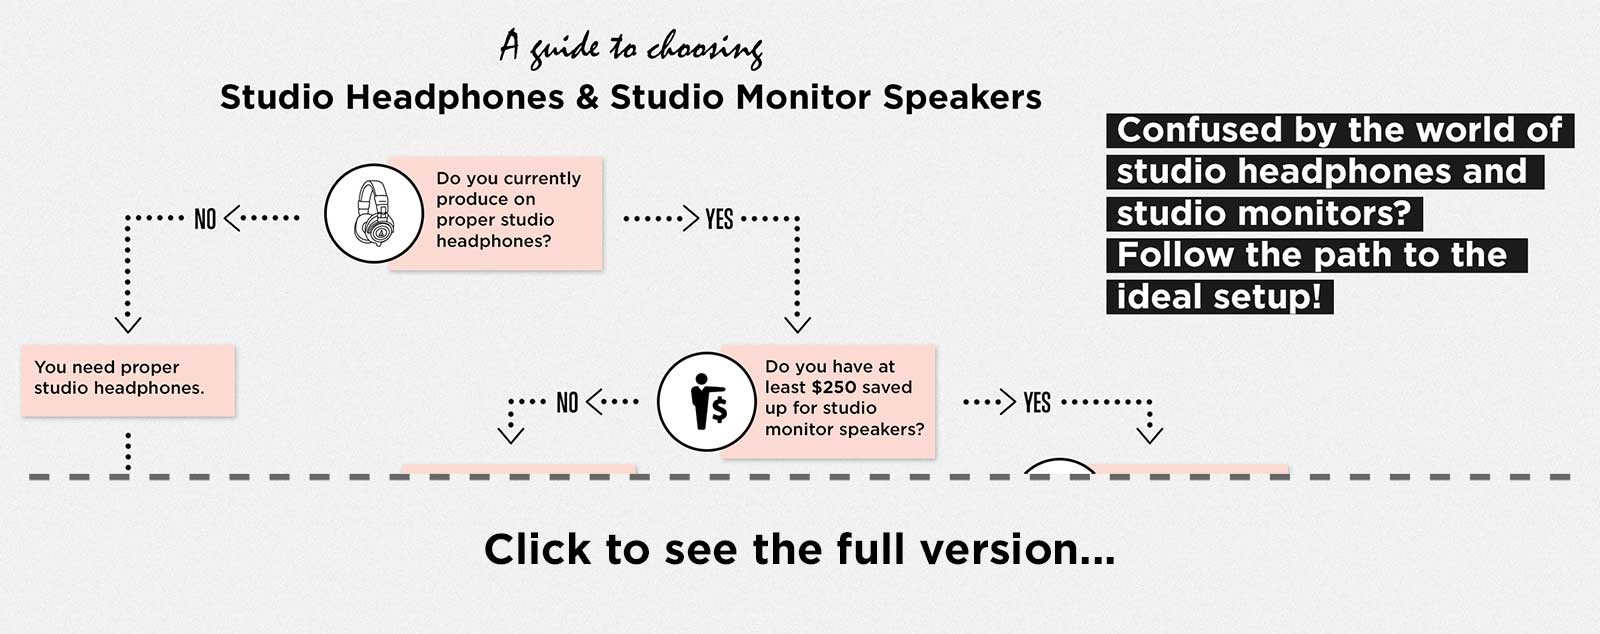 Infographic: A Guide to Choosing Studio Headphones & Studio Monitor Speakers